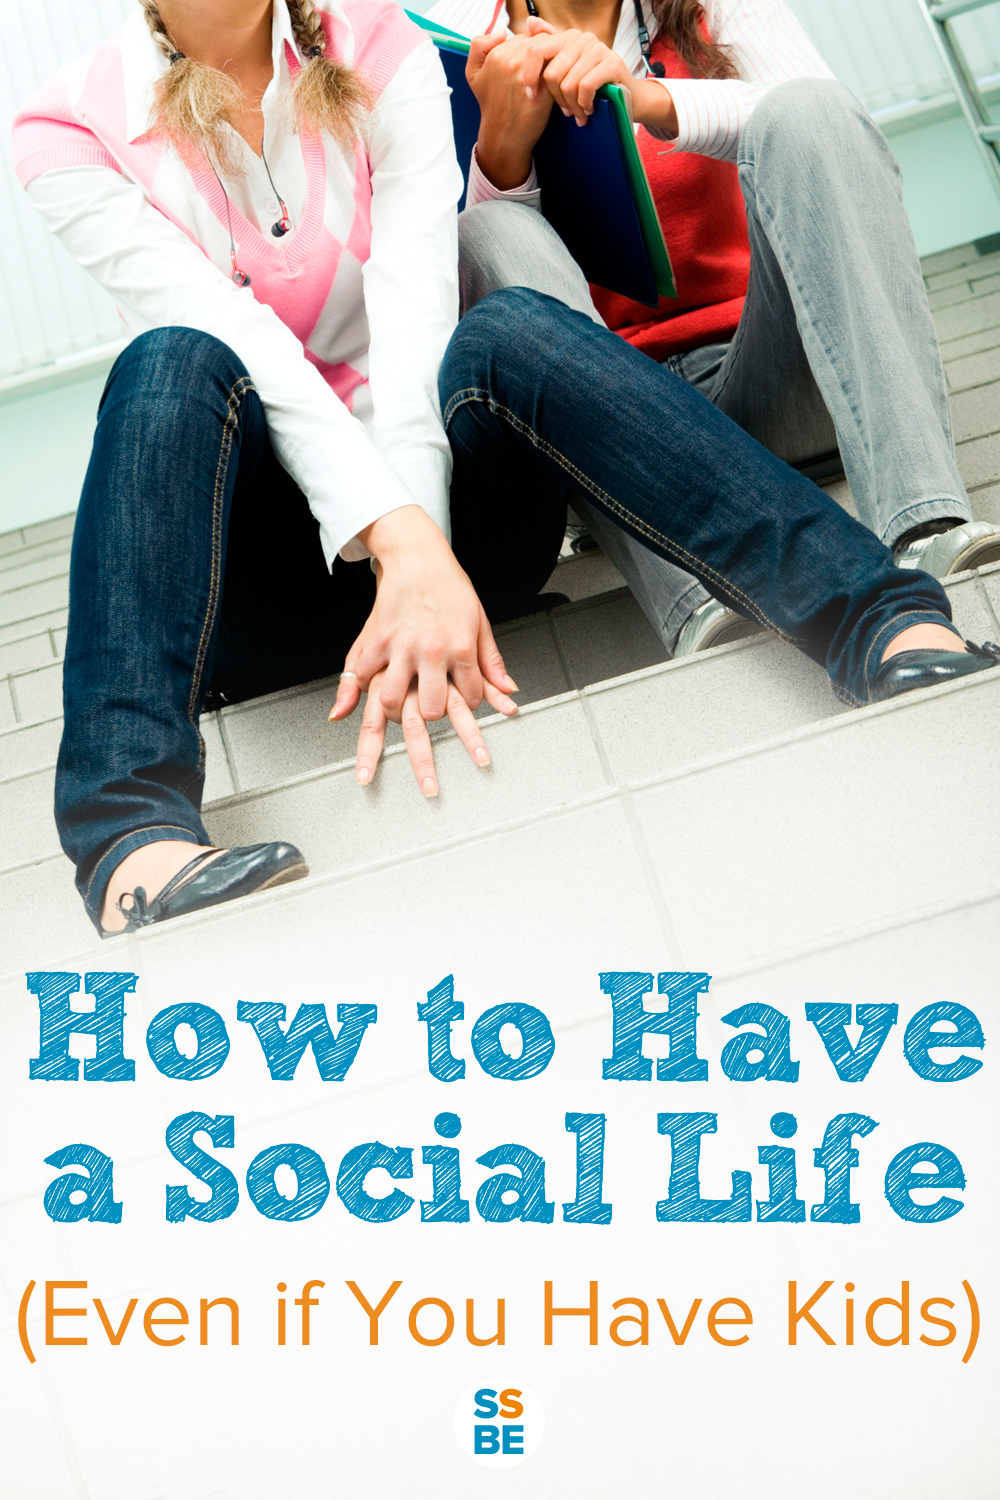 Having kids doesn't mean you can't hang out with friends, family or your partner. Discover exactly how to have a social life even if you have kids.